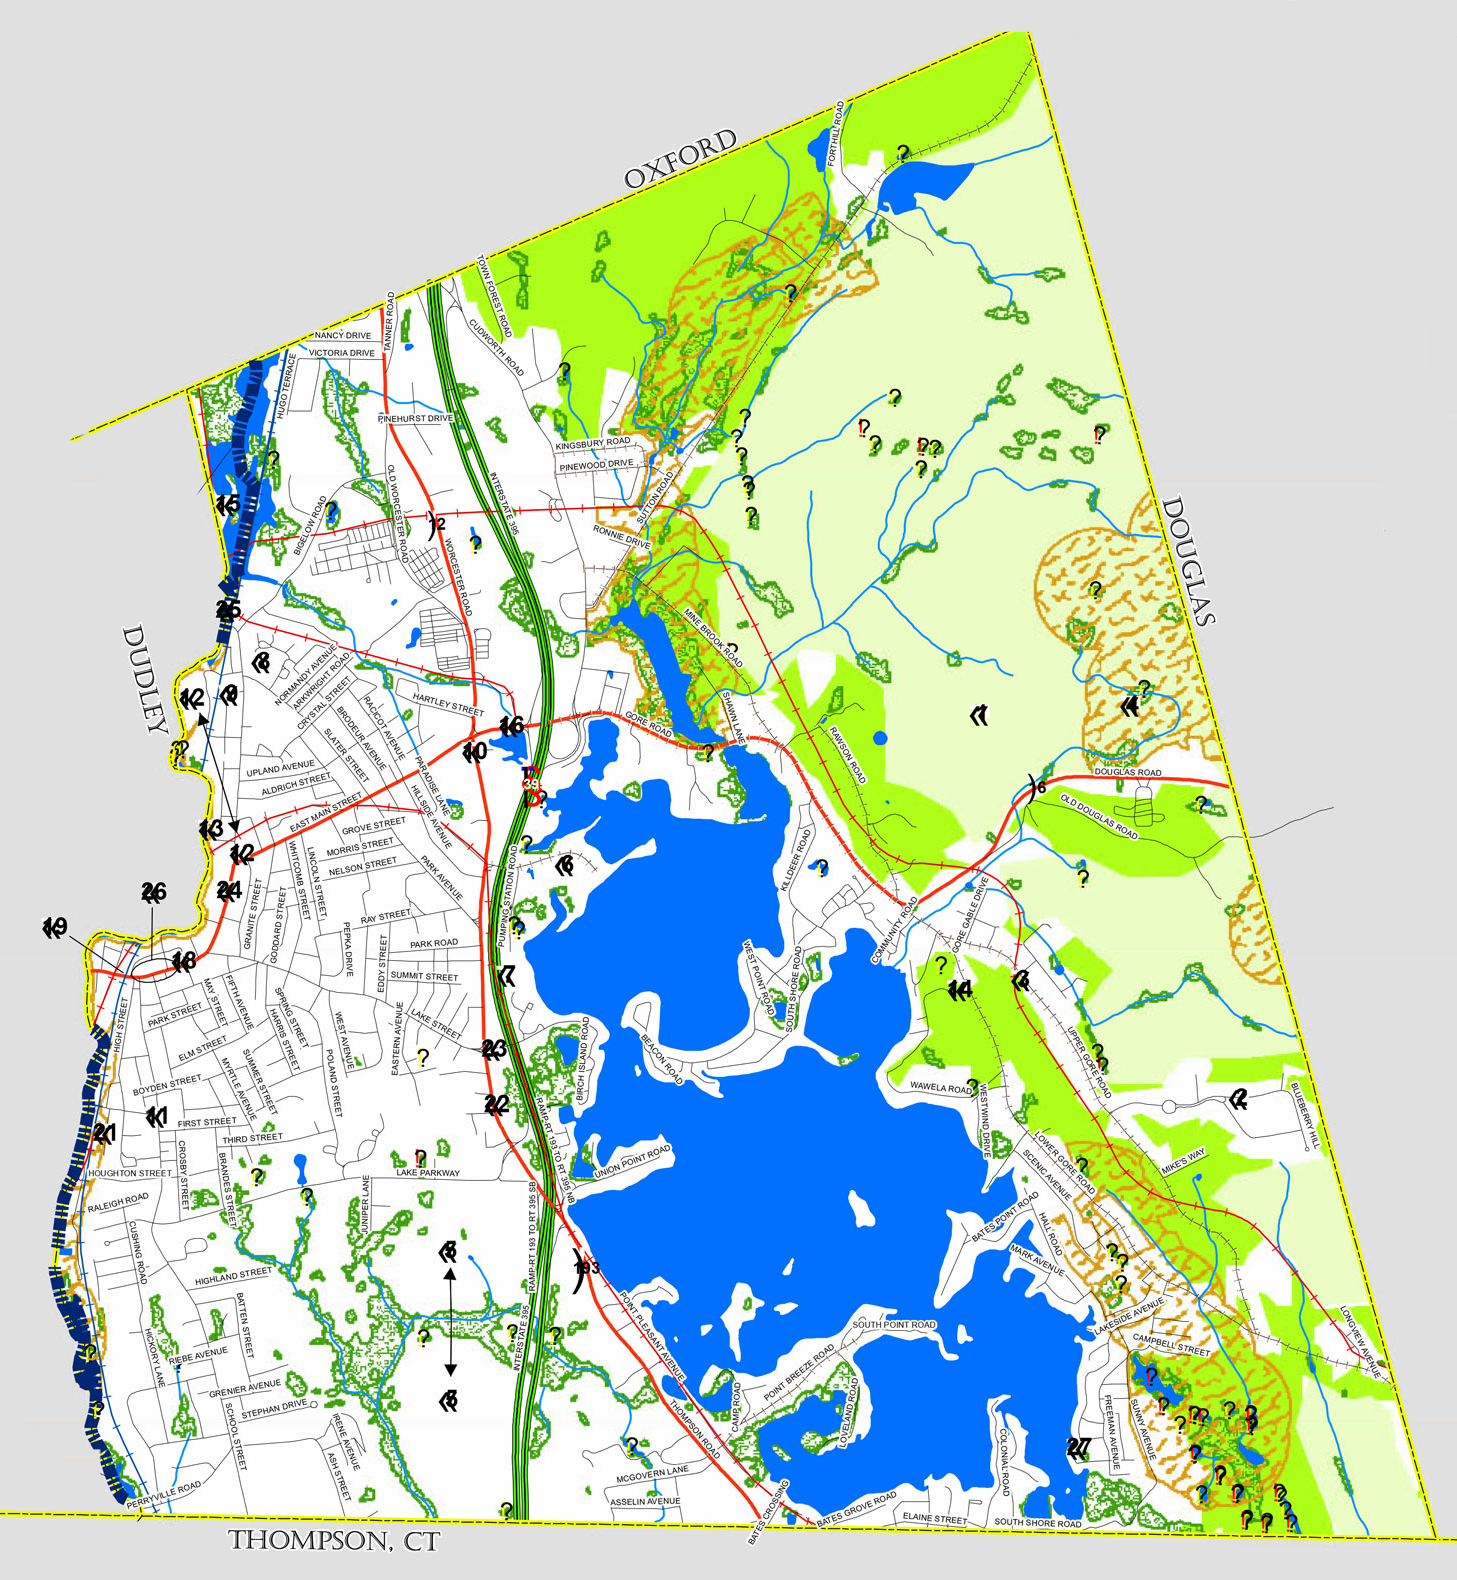 Zoning Map / Property Cards / GIS | Webster, MA on real estate property maps, gps property maps, county property maps,